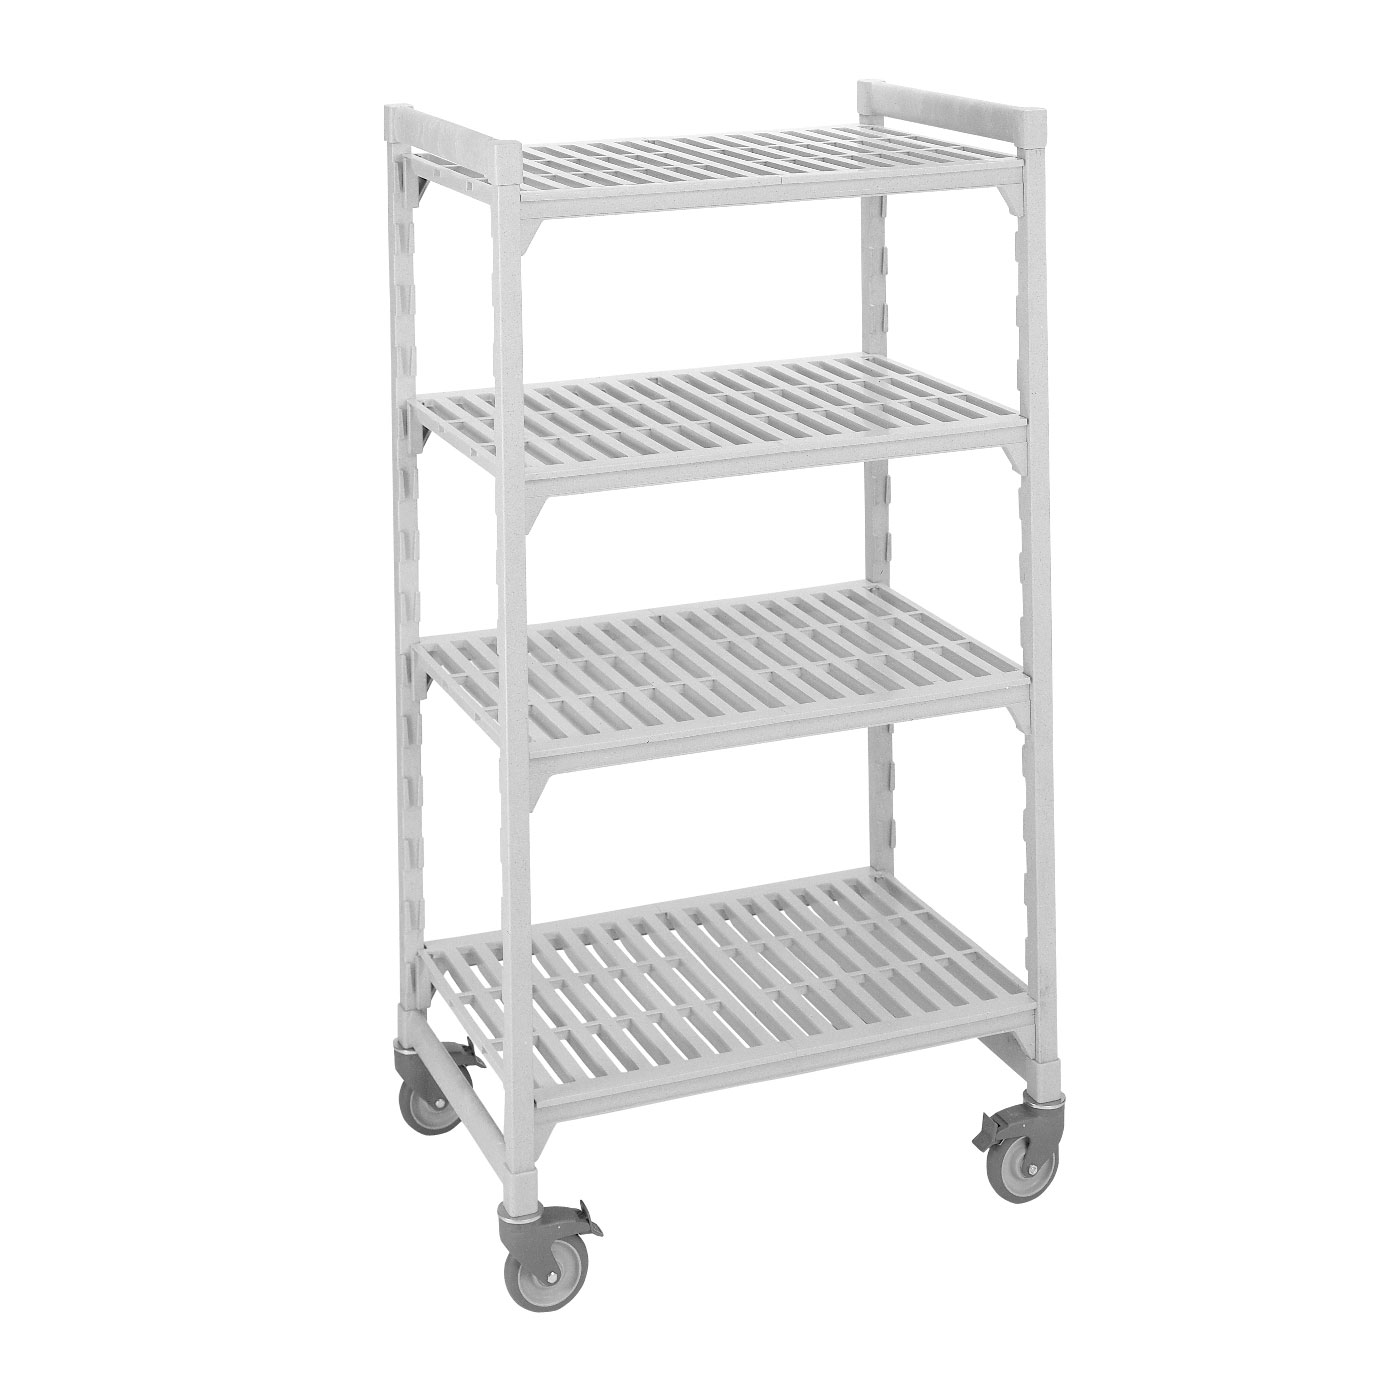 Cambro CPHU244875S4480 shelving unit, plastic with poly exterior steel posts